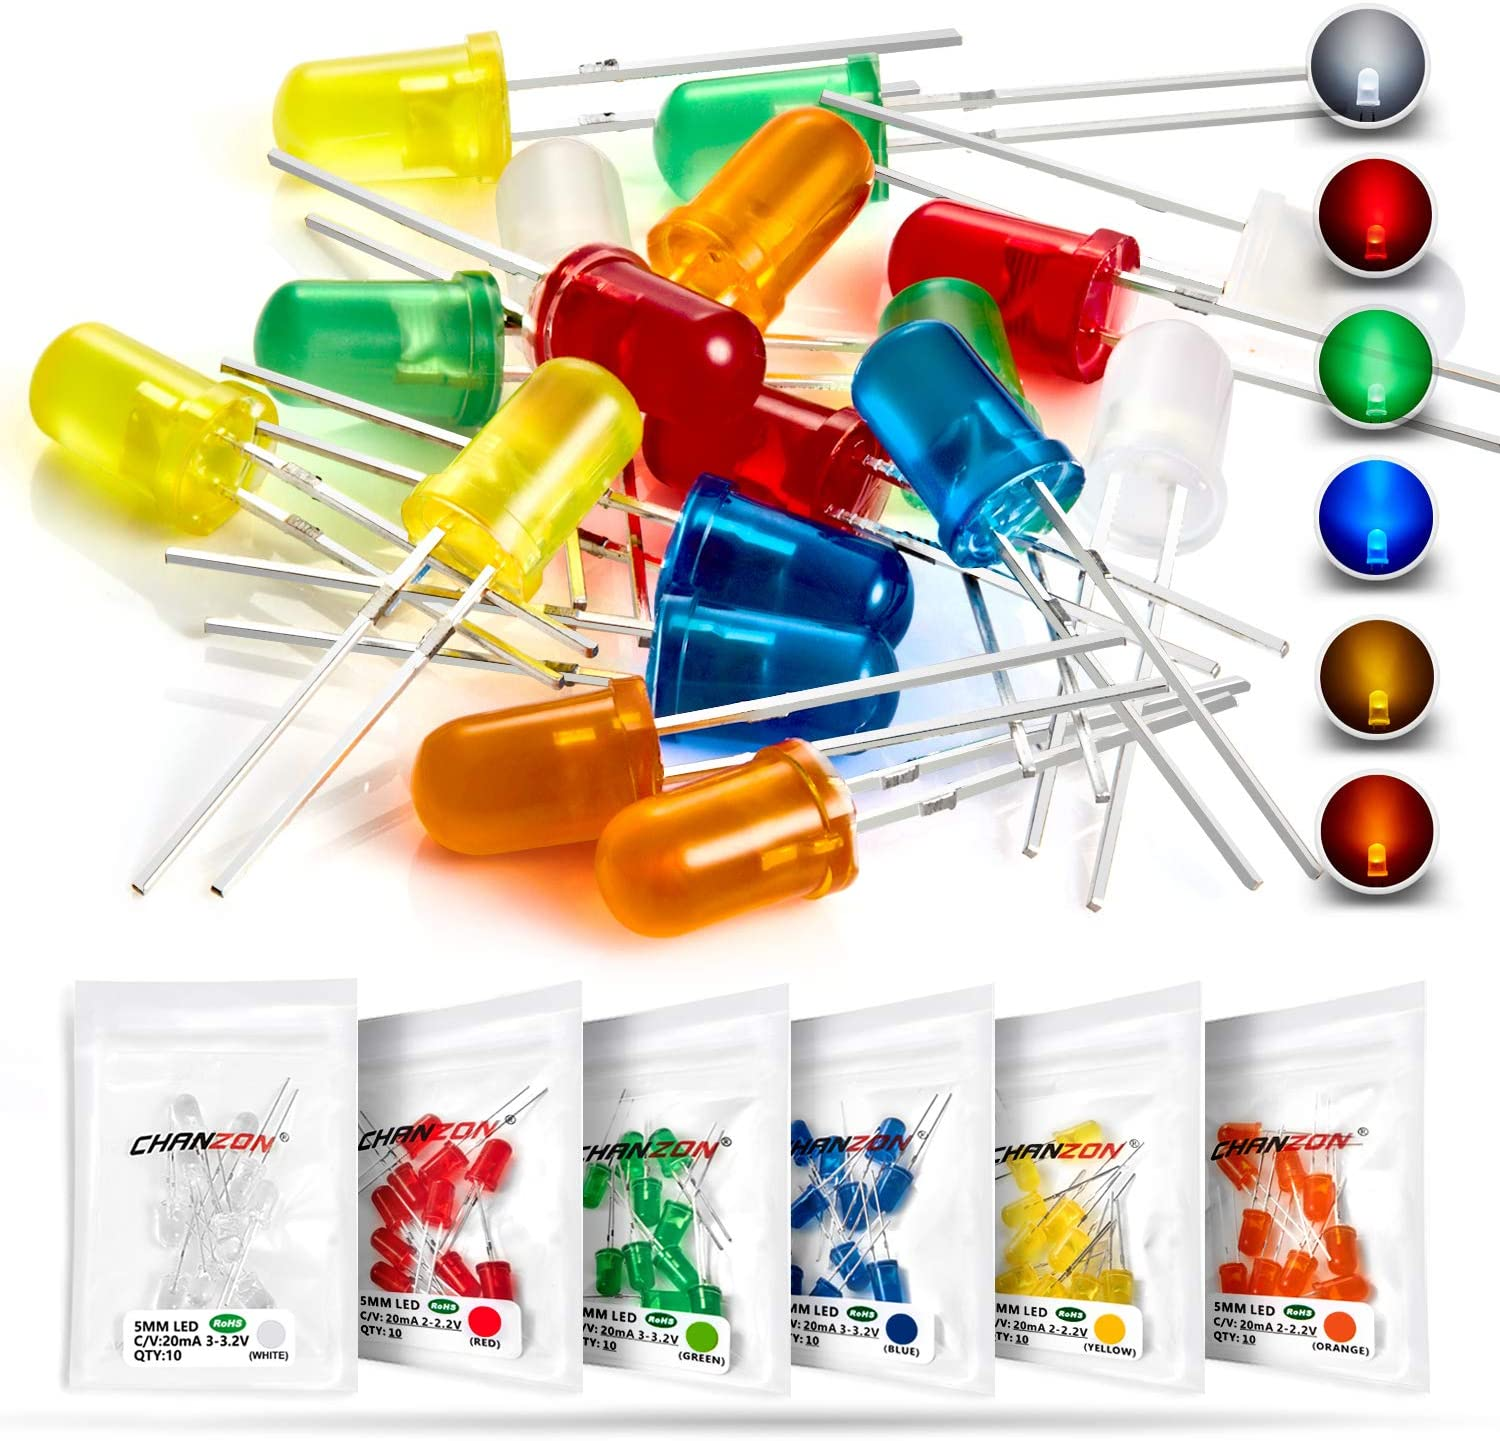 LED Circuit Assorted Kit for Science Project Experiment MCIGICM White 5mm LED Light Diodes 100 Pcs